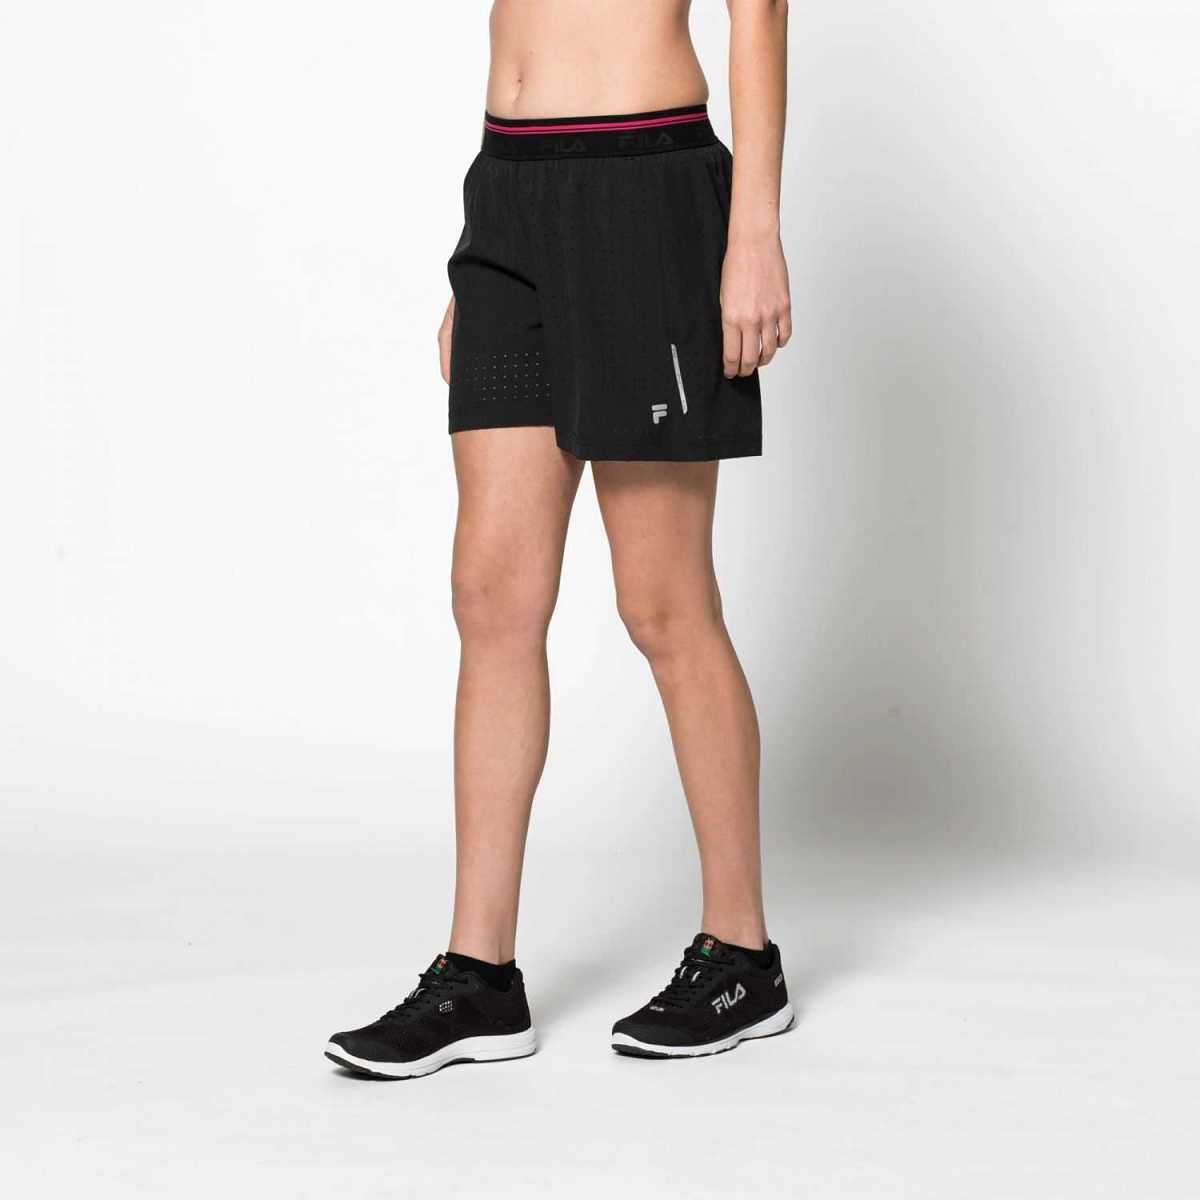 FILA Short With Inside Tight in Black for Women - GOOFASH